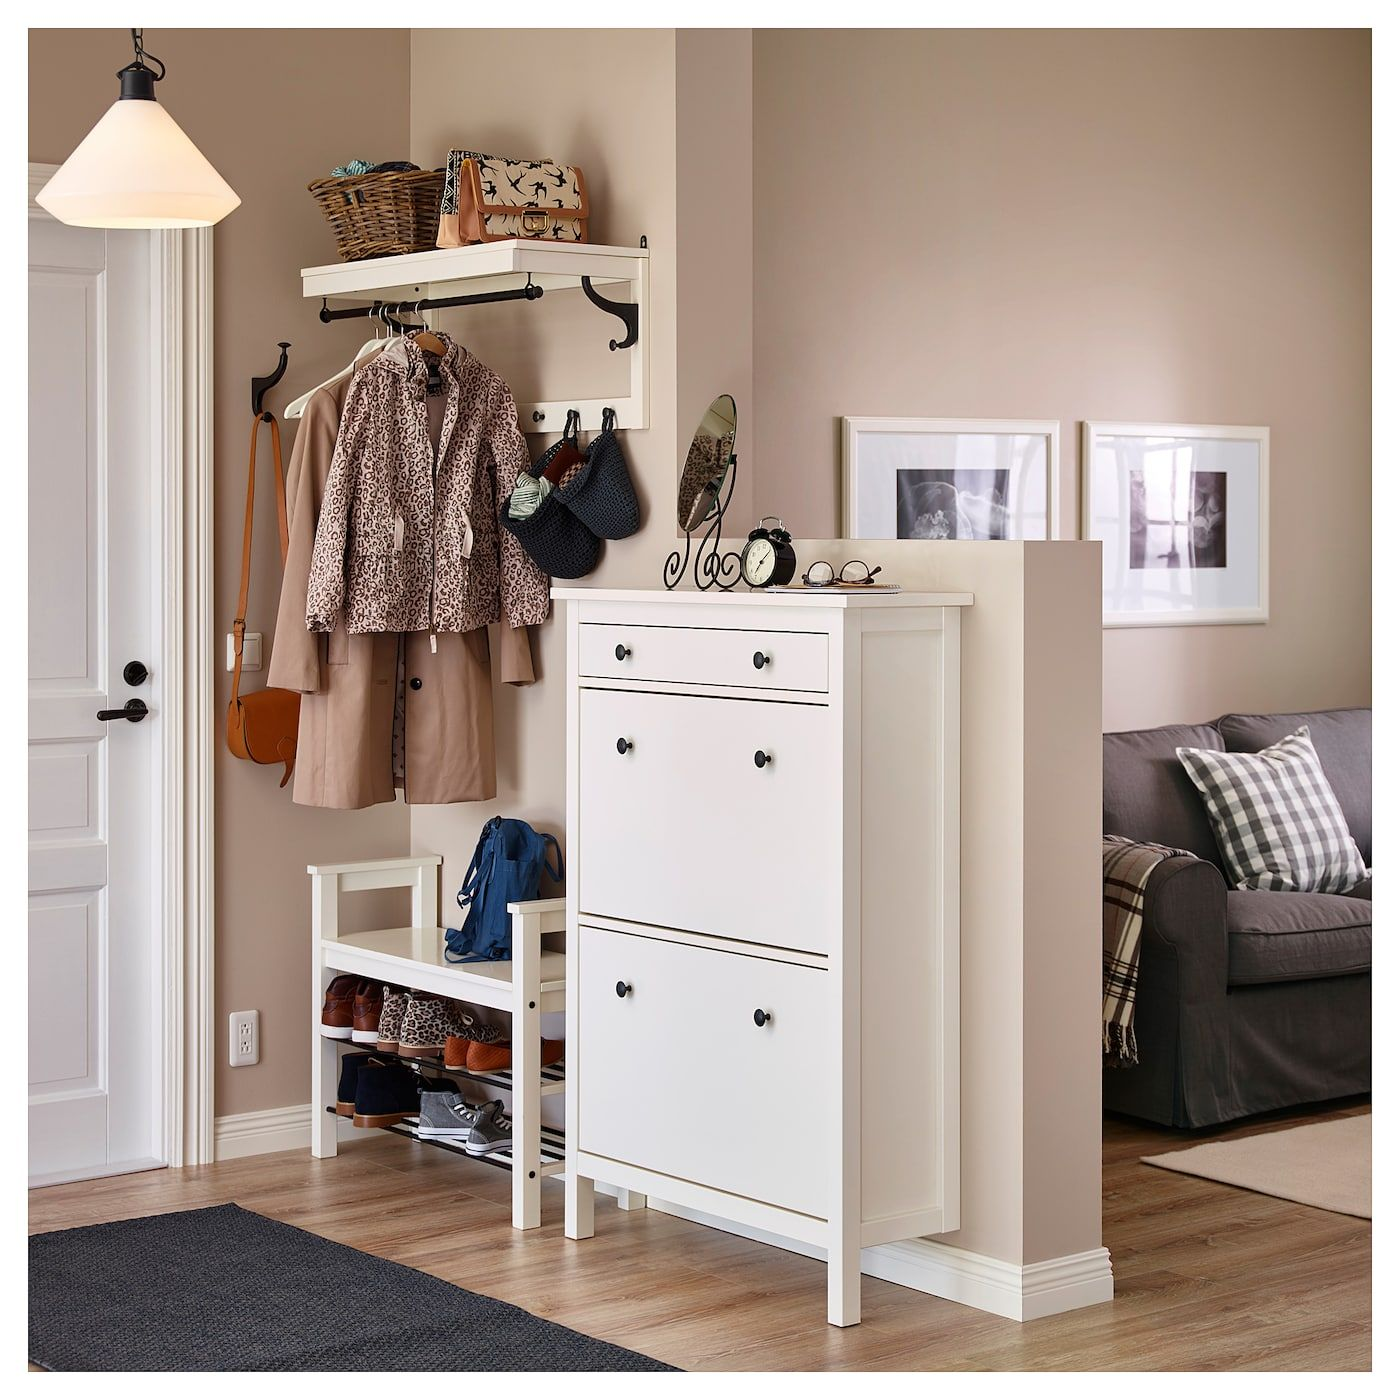 Hemnes Shoe Cabinet With 2 Compartments White 35x50 Hallway